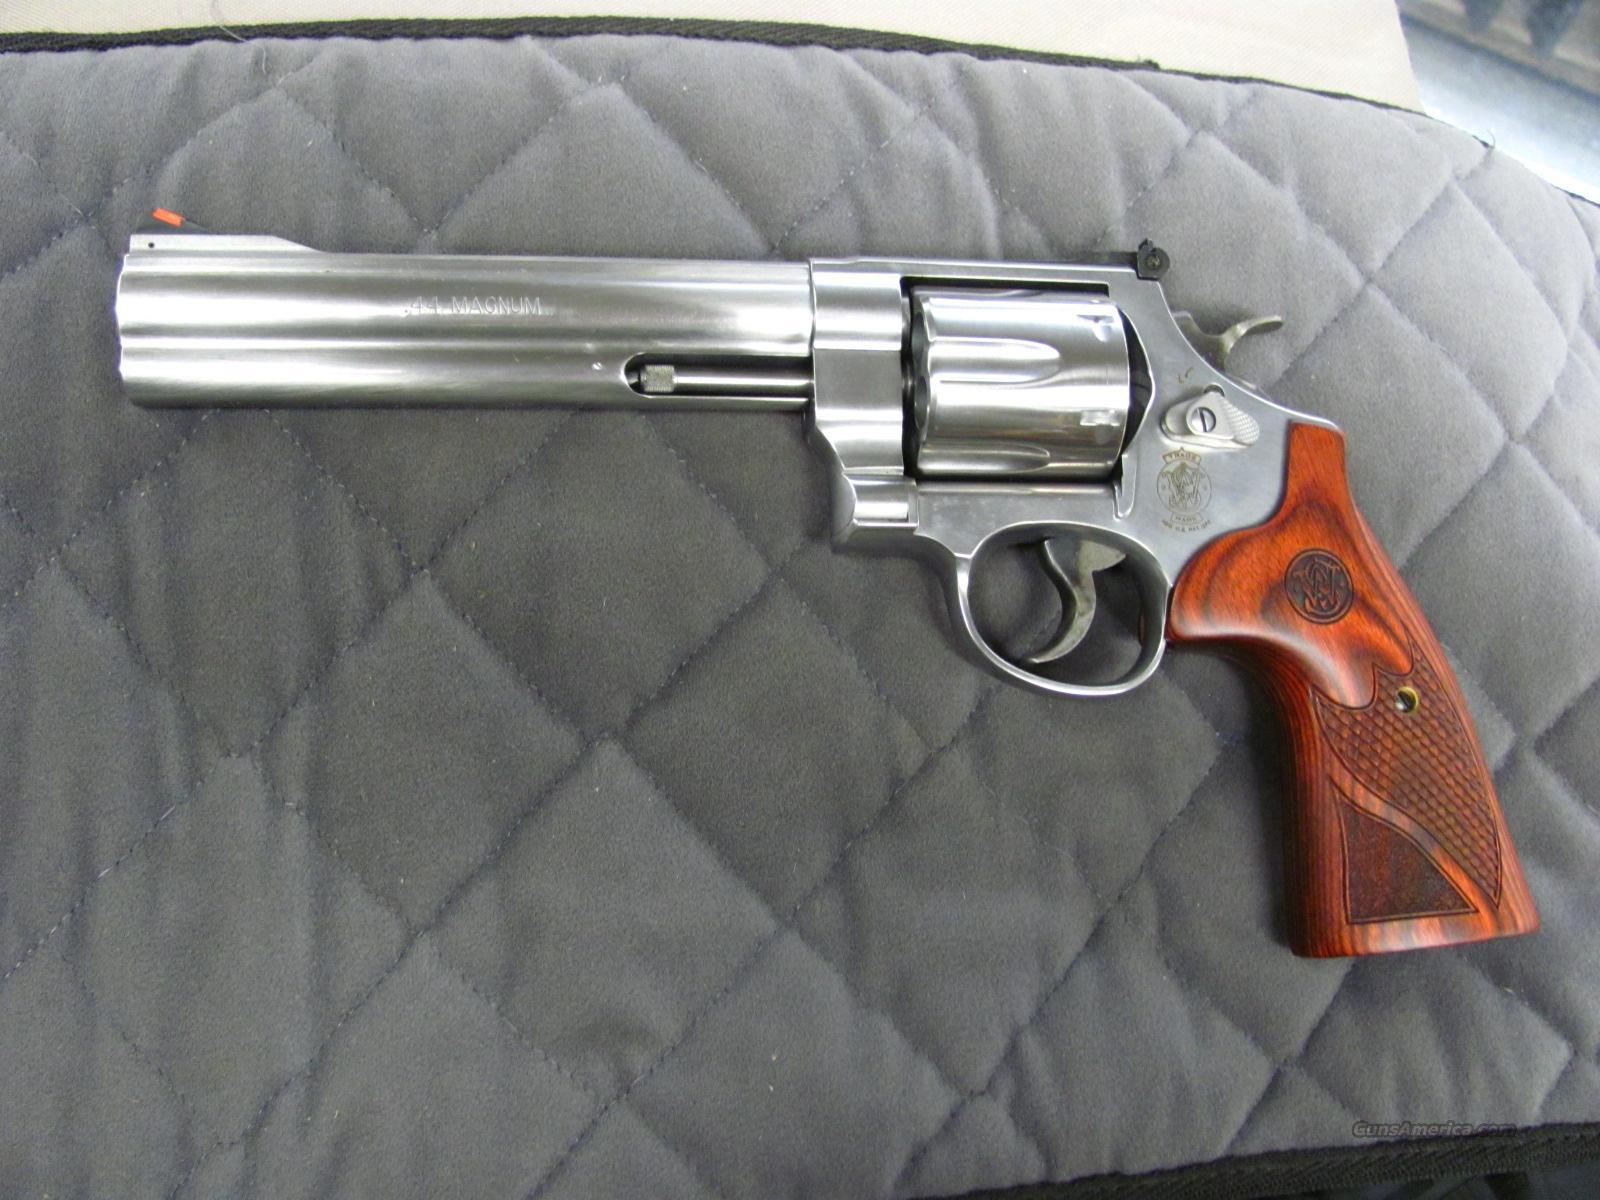 Smith & Wesson Model 629 Deluxe 44 mag 6.5 inch Talo Grips **NEW**  Guns > Pistols > Smith & Wesson Revolvers > Full Frame Revolver